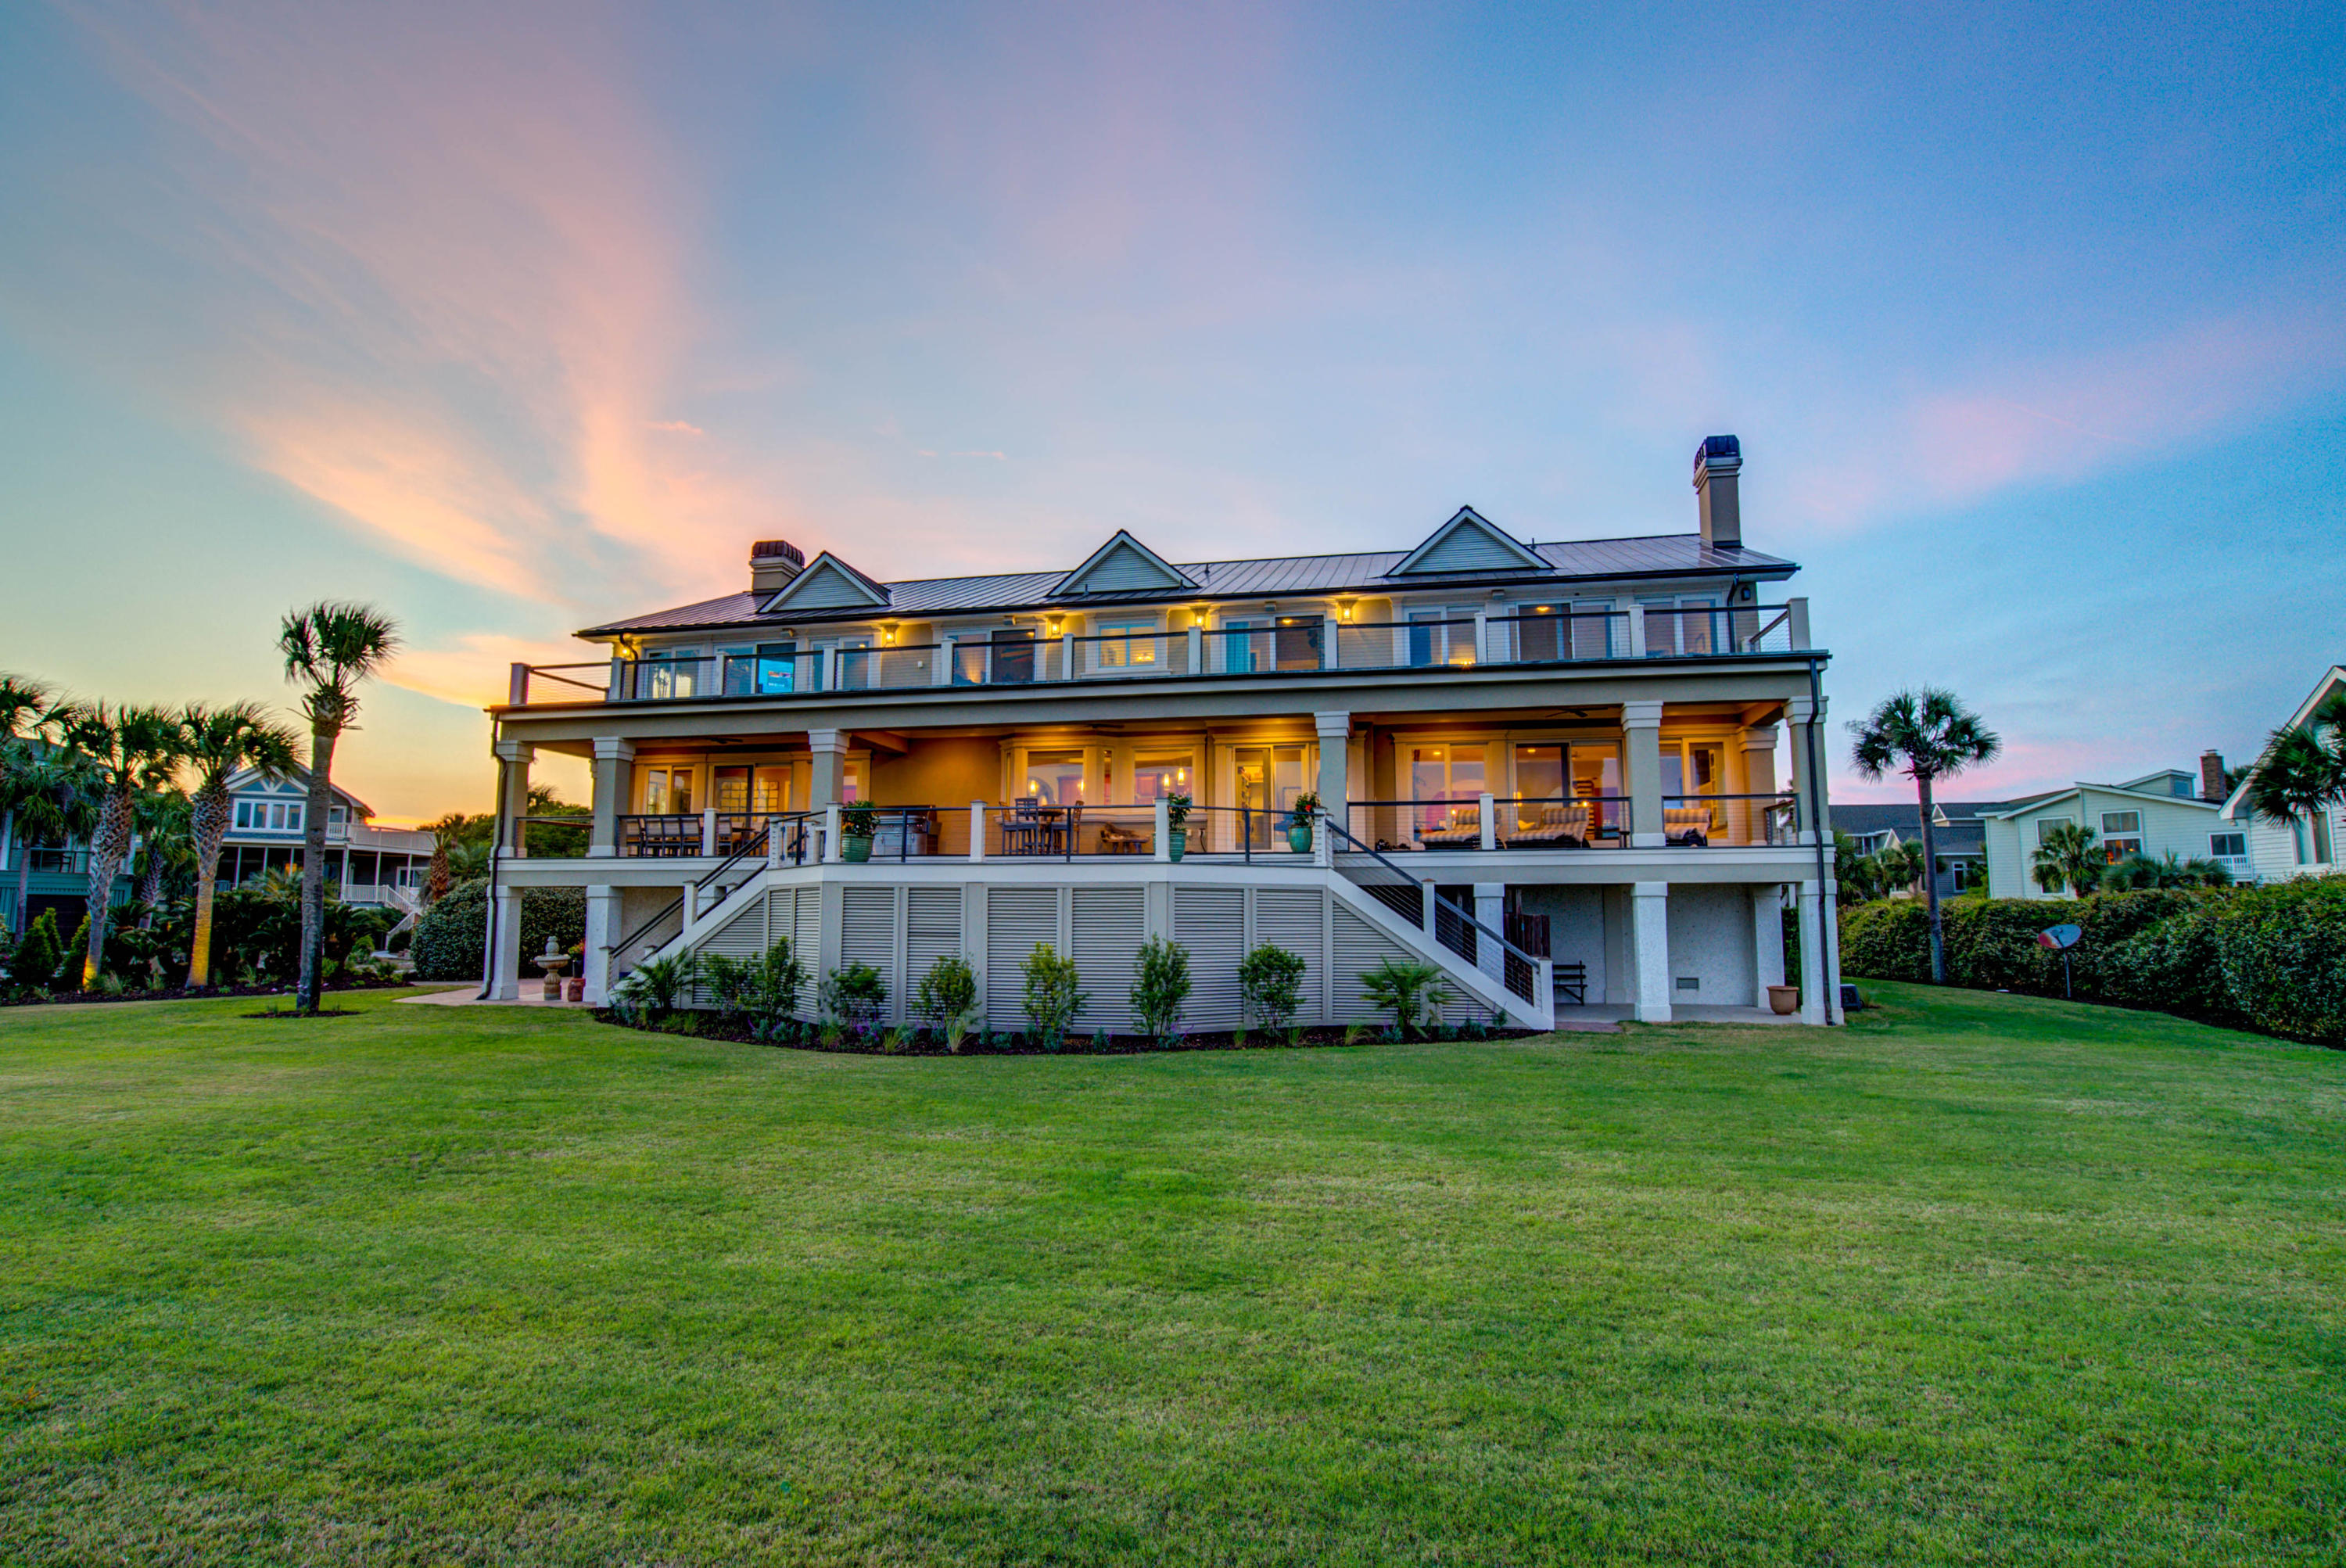 Isle of Palms Homes For Sale - 2 50th, Isle of Palms, SC - 3